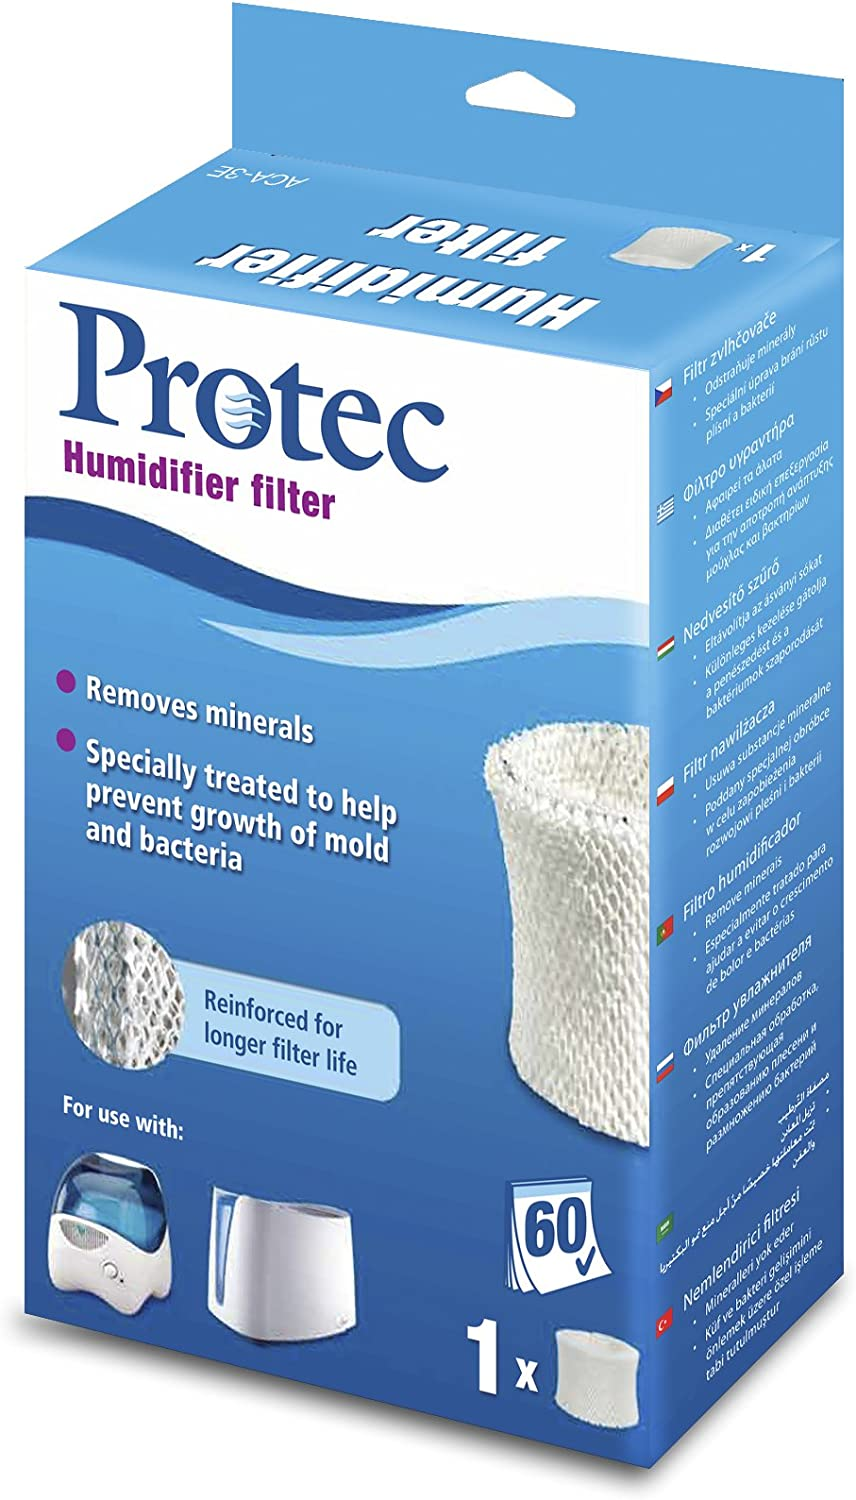 Packaging May Protec Extended Life Humidifier Wicking Filter Cartridge  PWF2